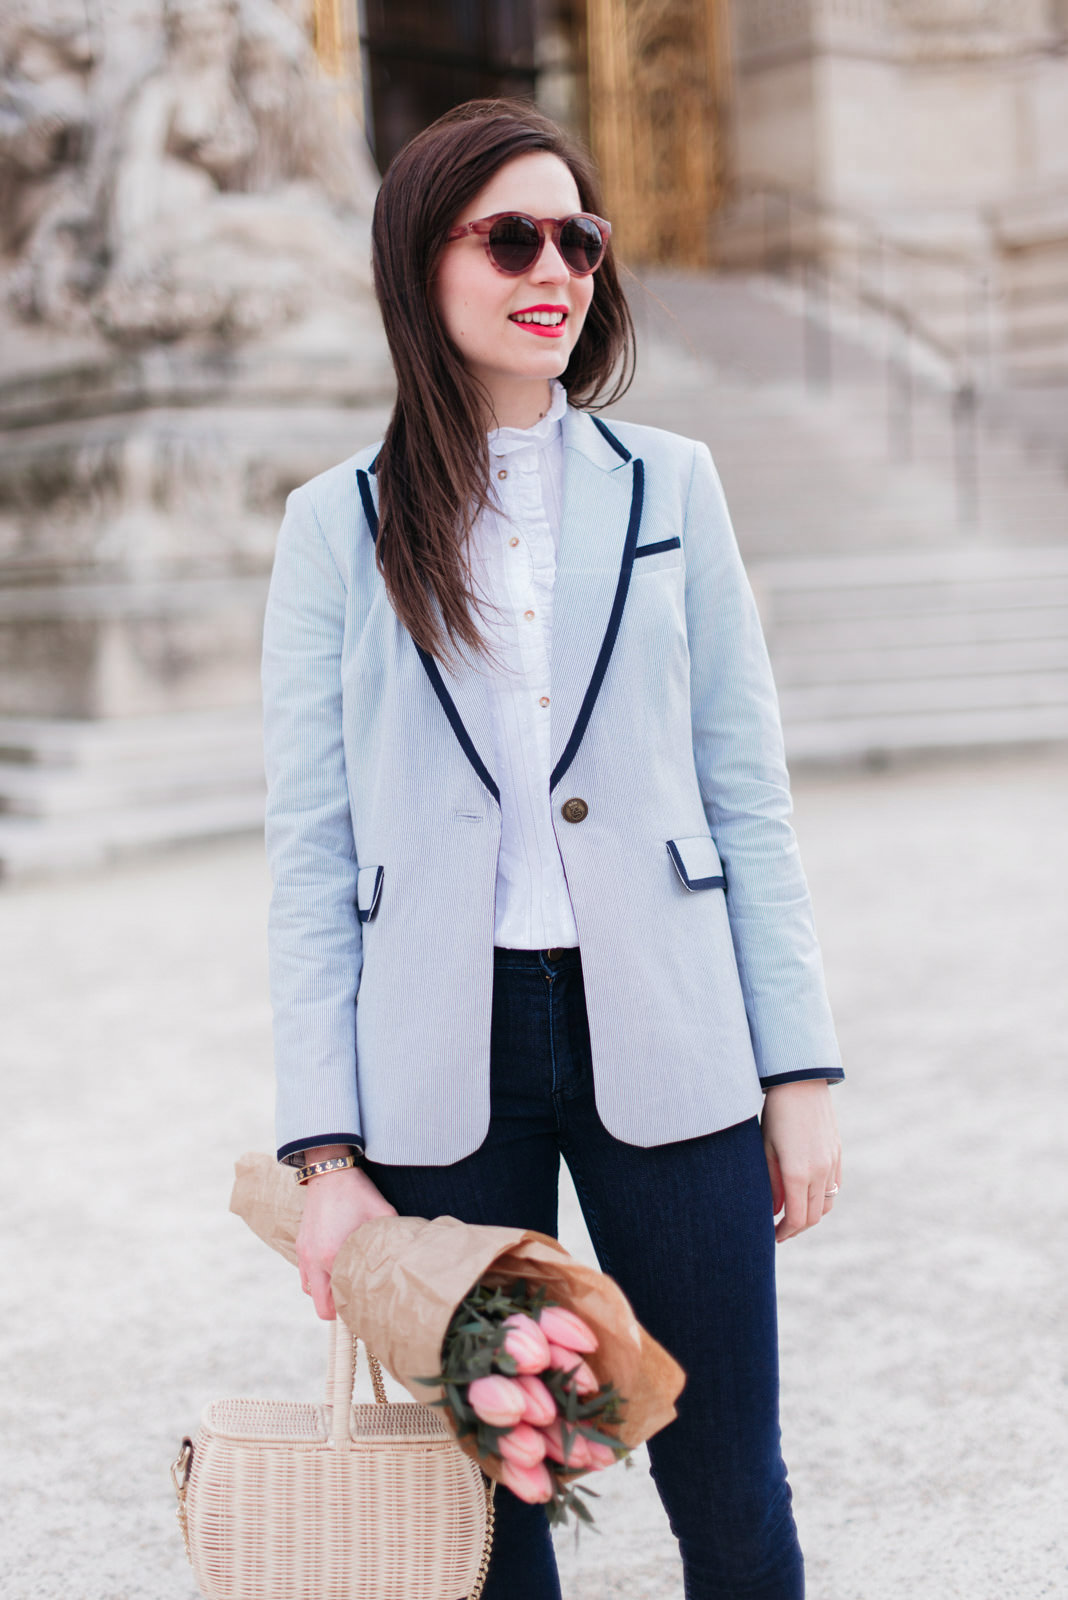 Blog-Mode-And-The-City-Looks-Faire-Venir-Le-Printemps-5